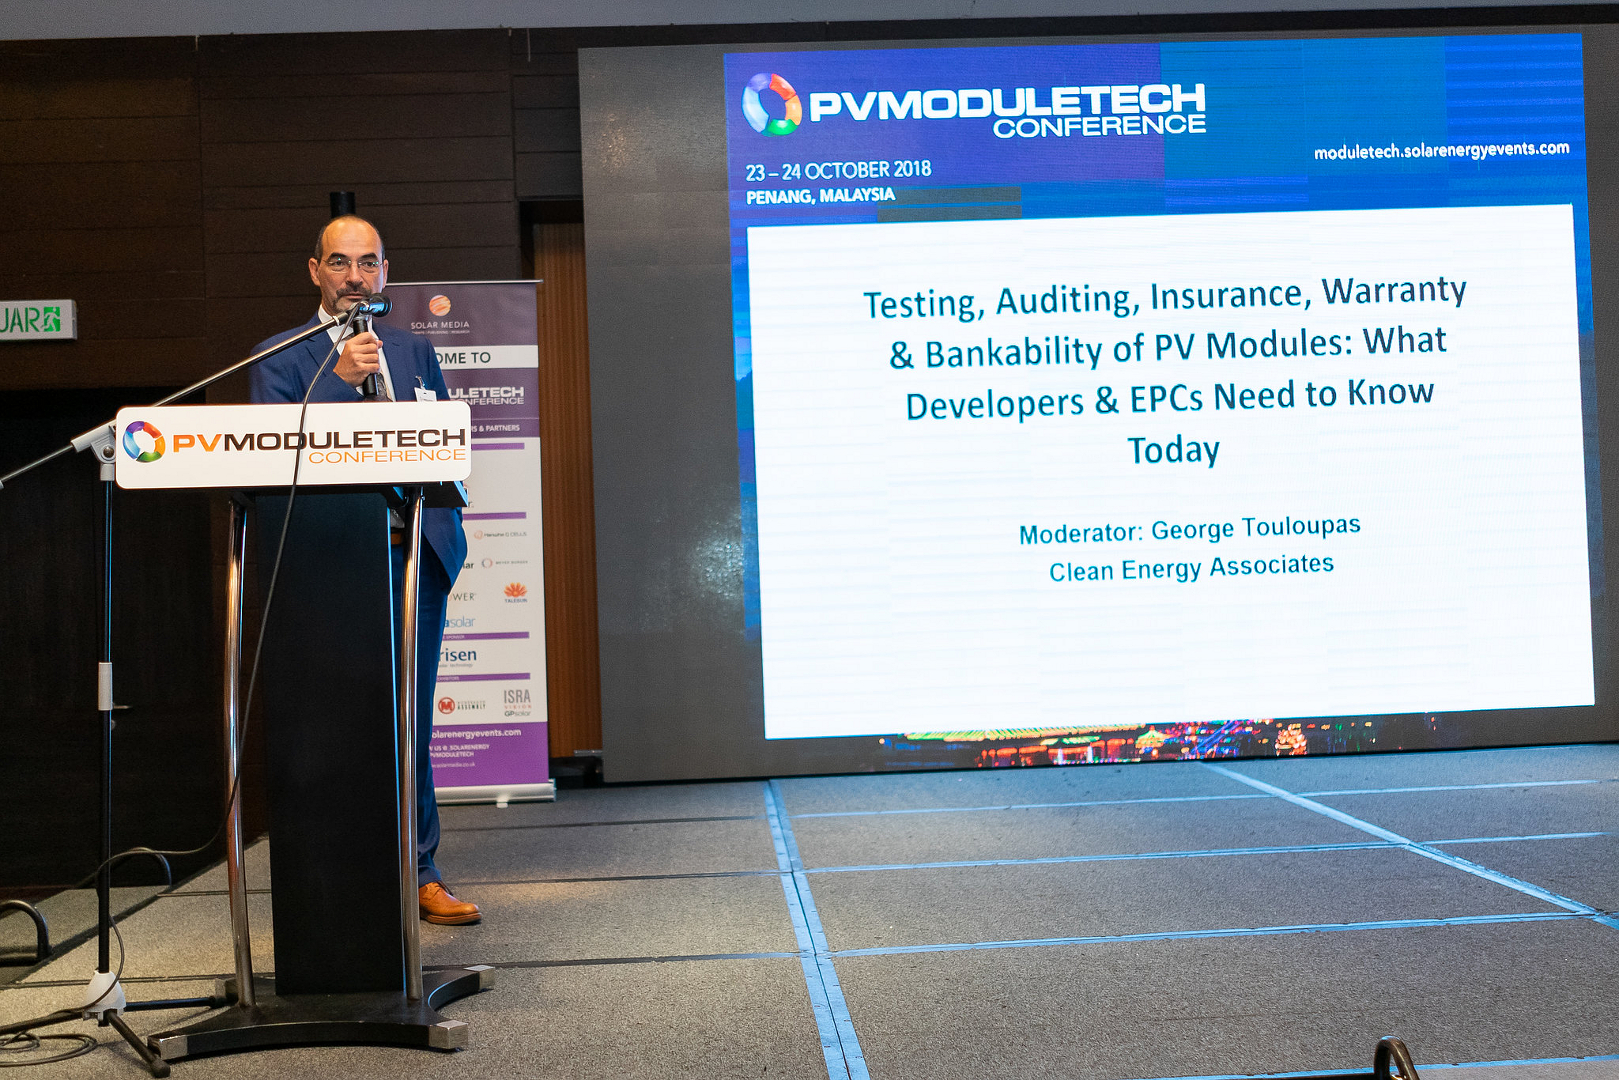 Recently, PV-Tech took the opportunity to catch up with George Touloupas, the Director of Technology and Quality at Clean Energy Associates and a key partner at the forthcoming PV ModuleTech 2019 meeting in Penang in October this year.